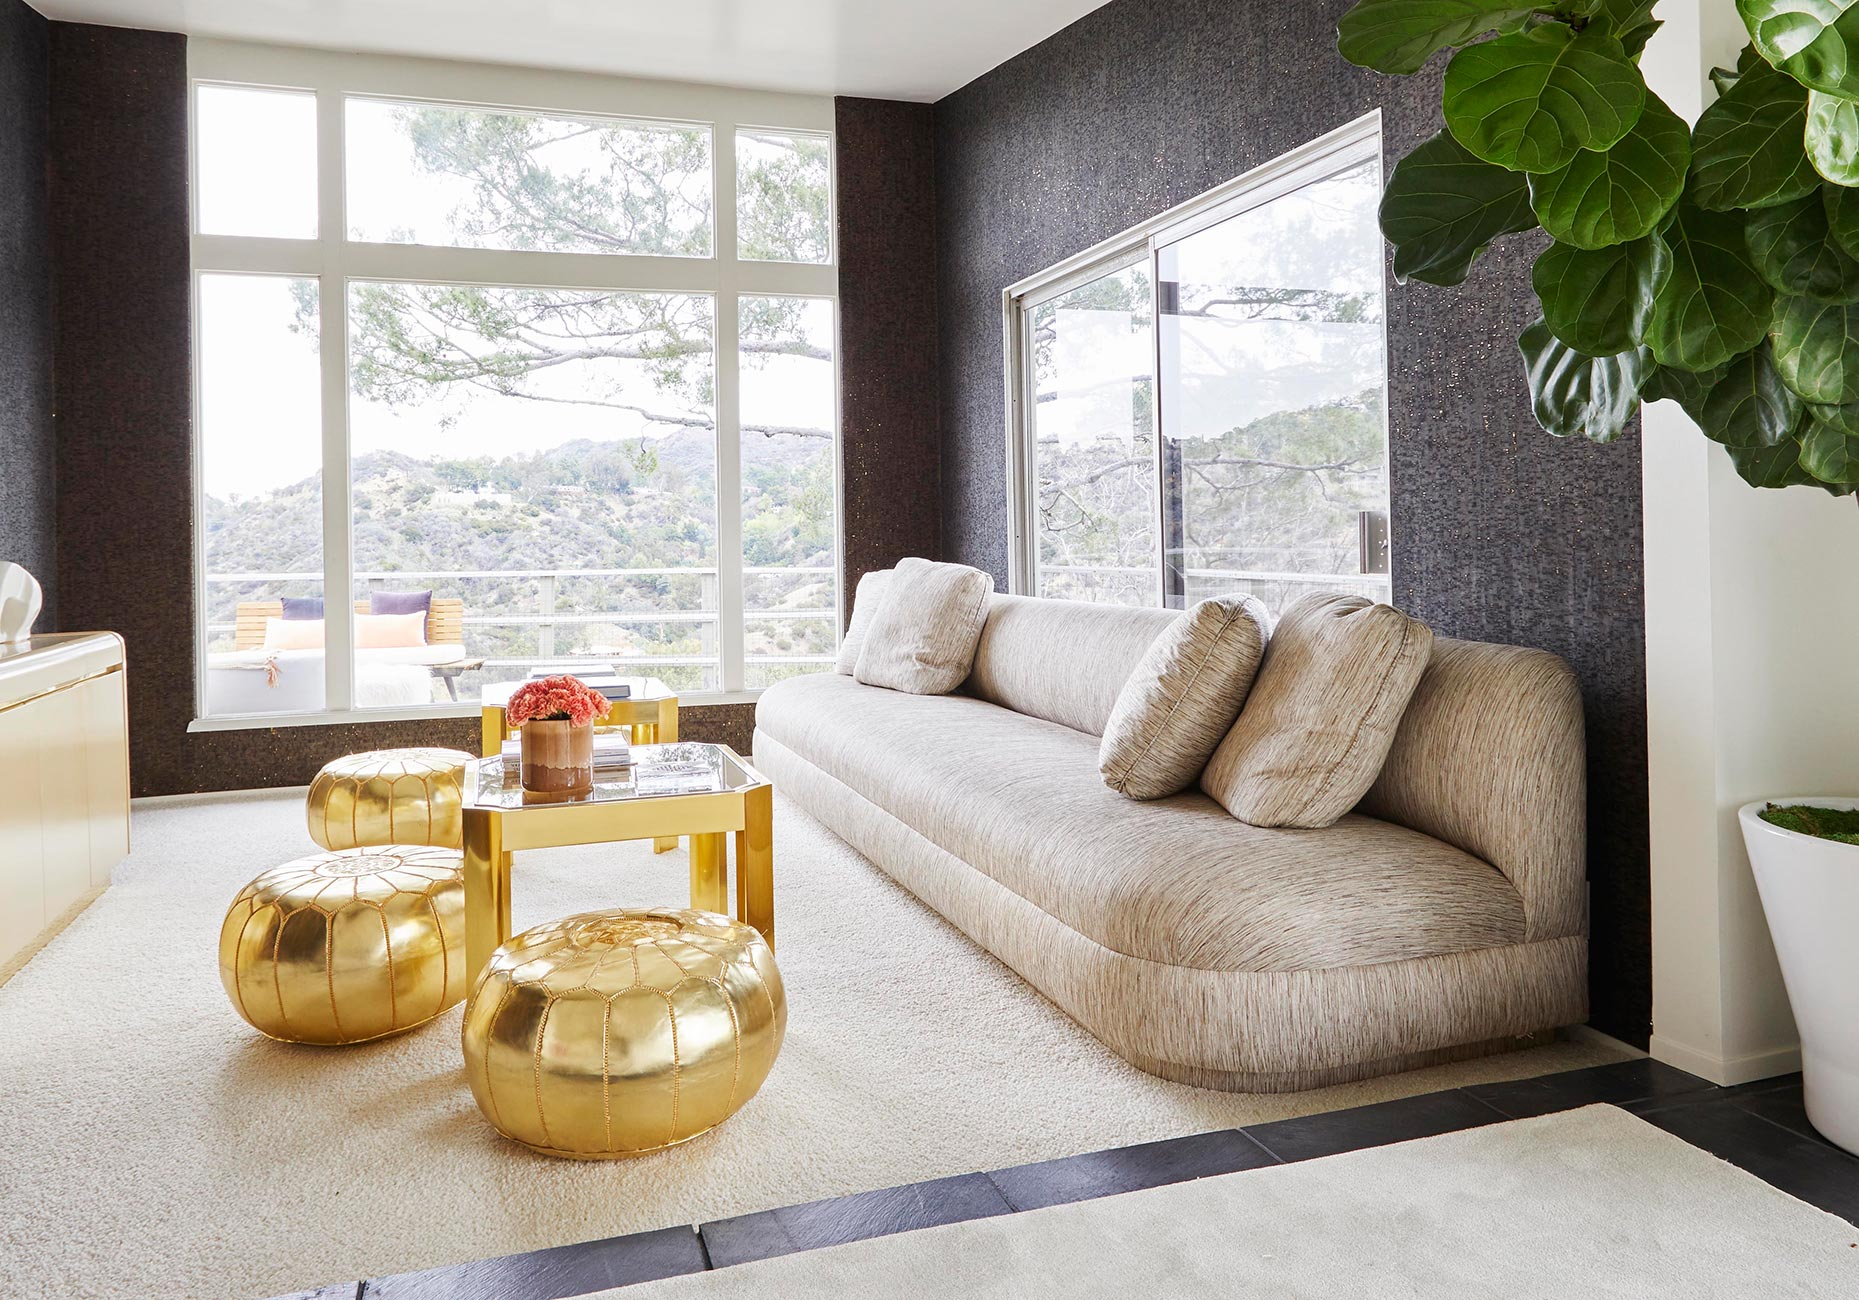 LA TV room interior design by Caroline Legrand Design